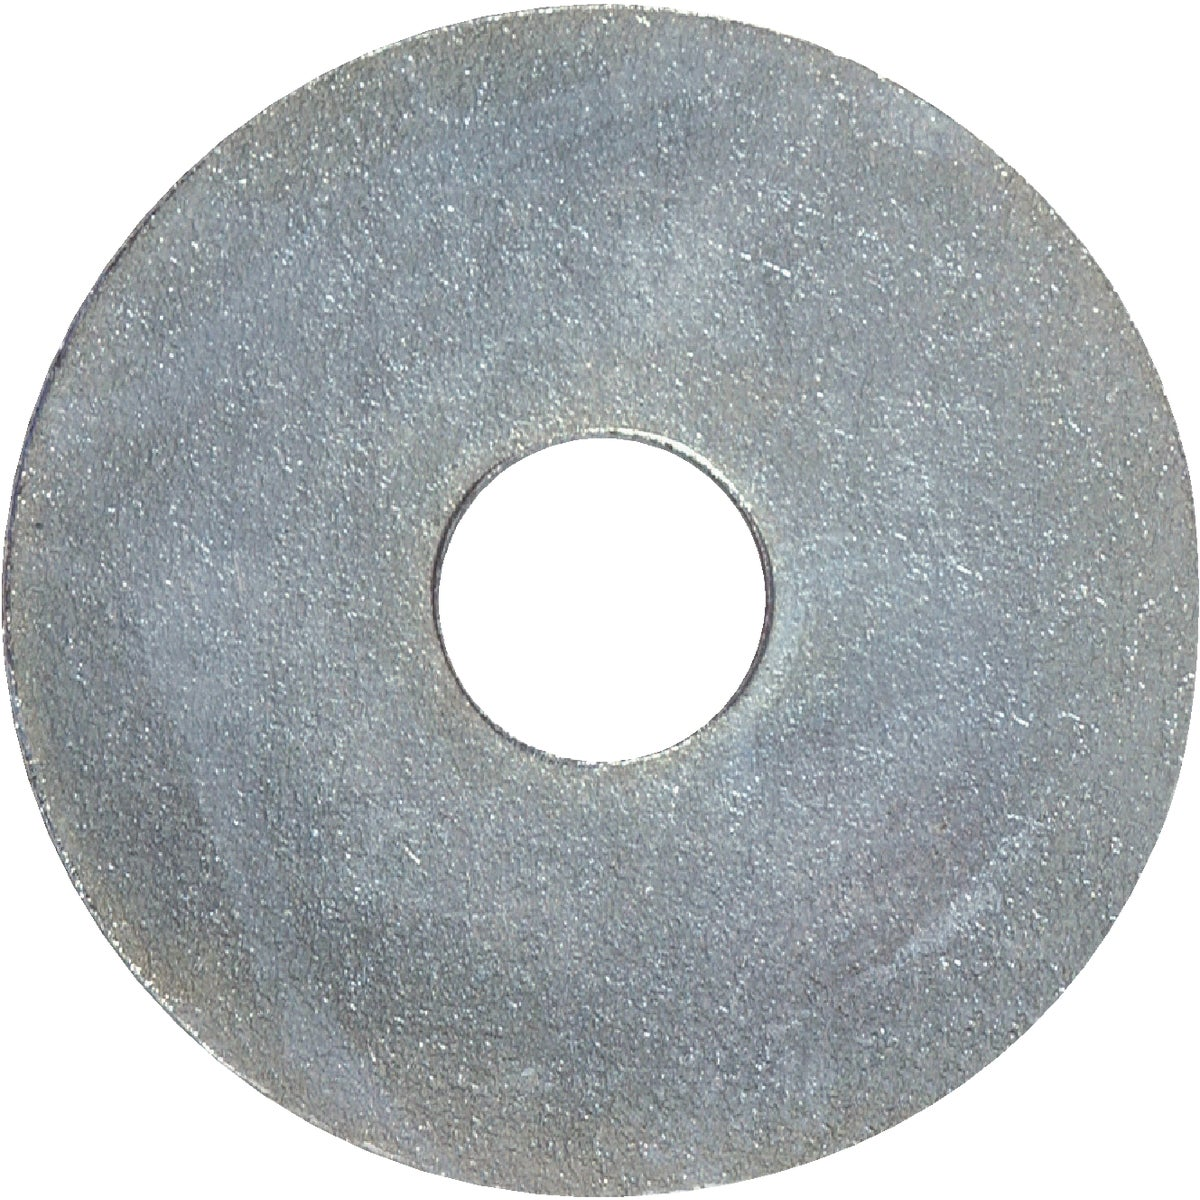 1/4X2 FENDER WASHER